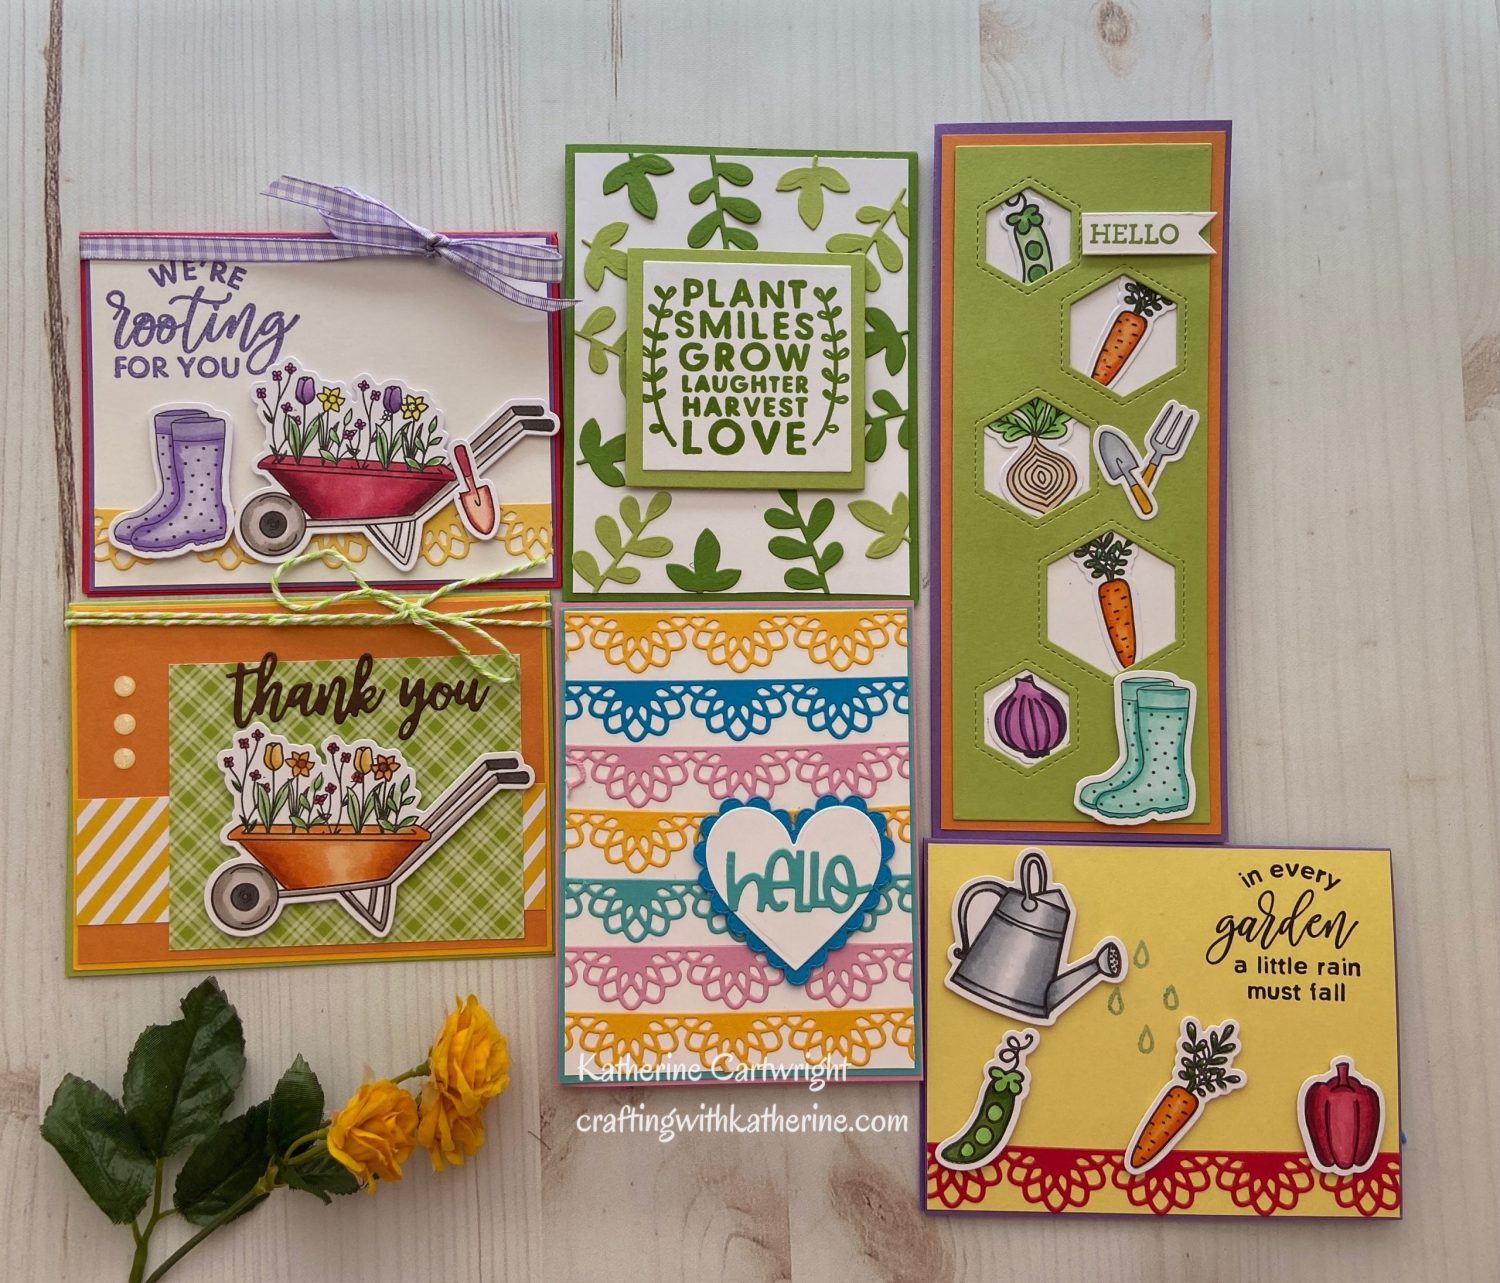 6 Cards – 1 Kit Diamond Press Grown with Love Kit